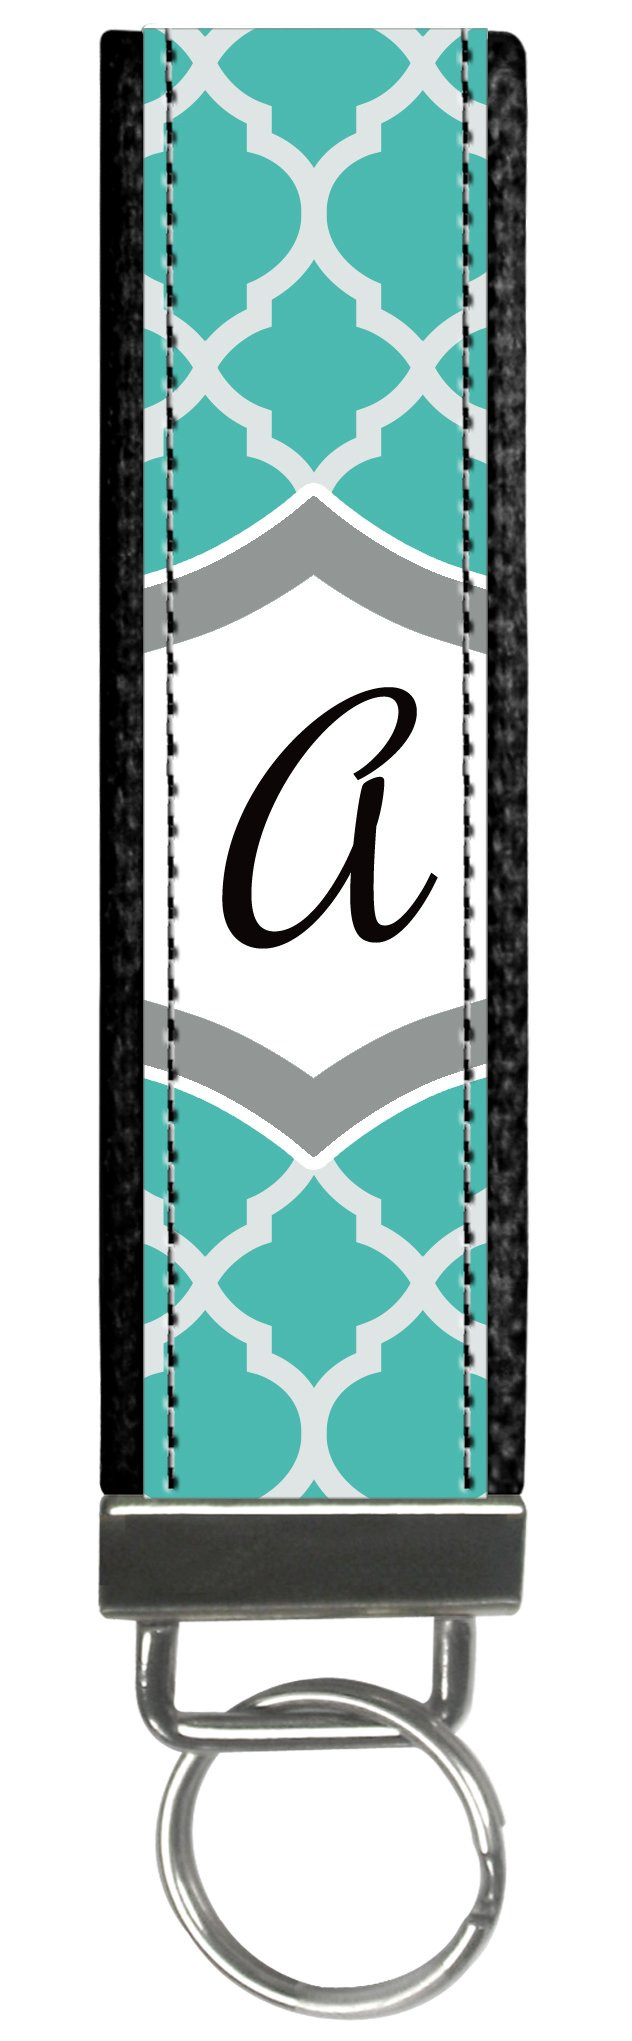 Snaptotes Teal Moroccan Design Personalized Monogram Wristlet Keychain